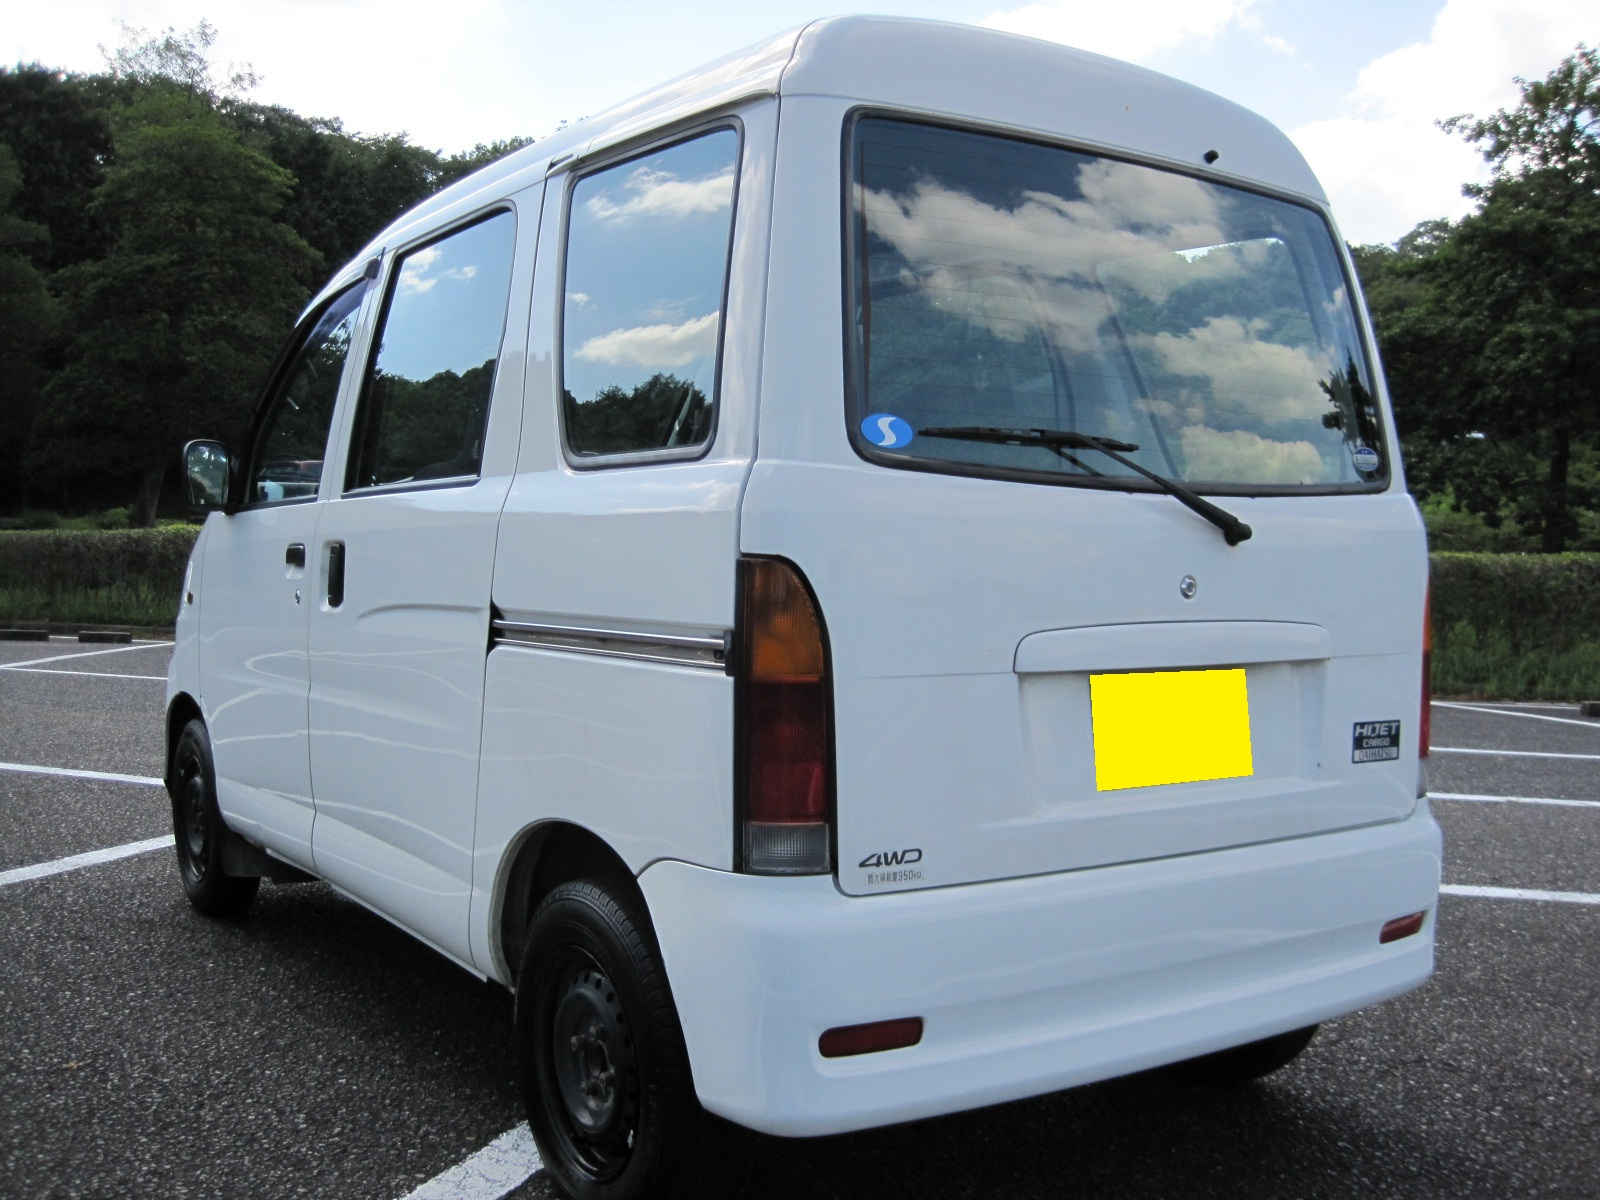 daihatsu  JPN CAR NAME FORSALEJAPAN IS GOGLE BEST RESULT